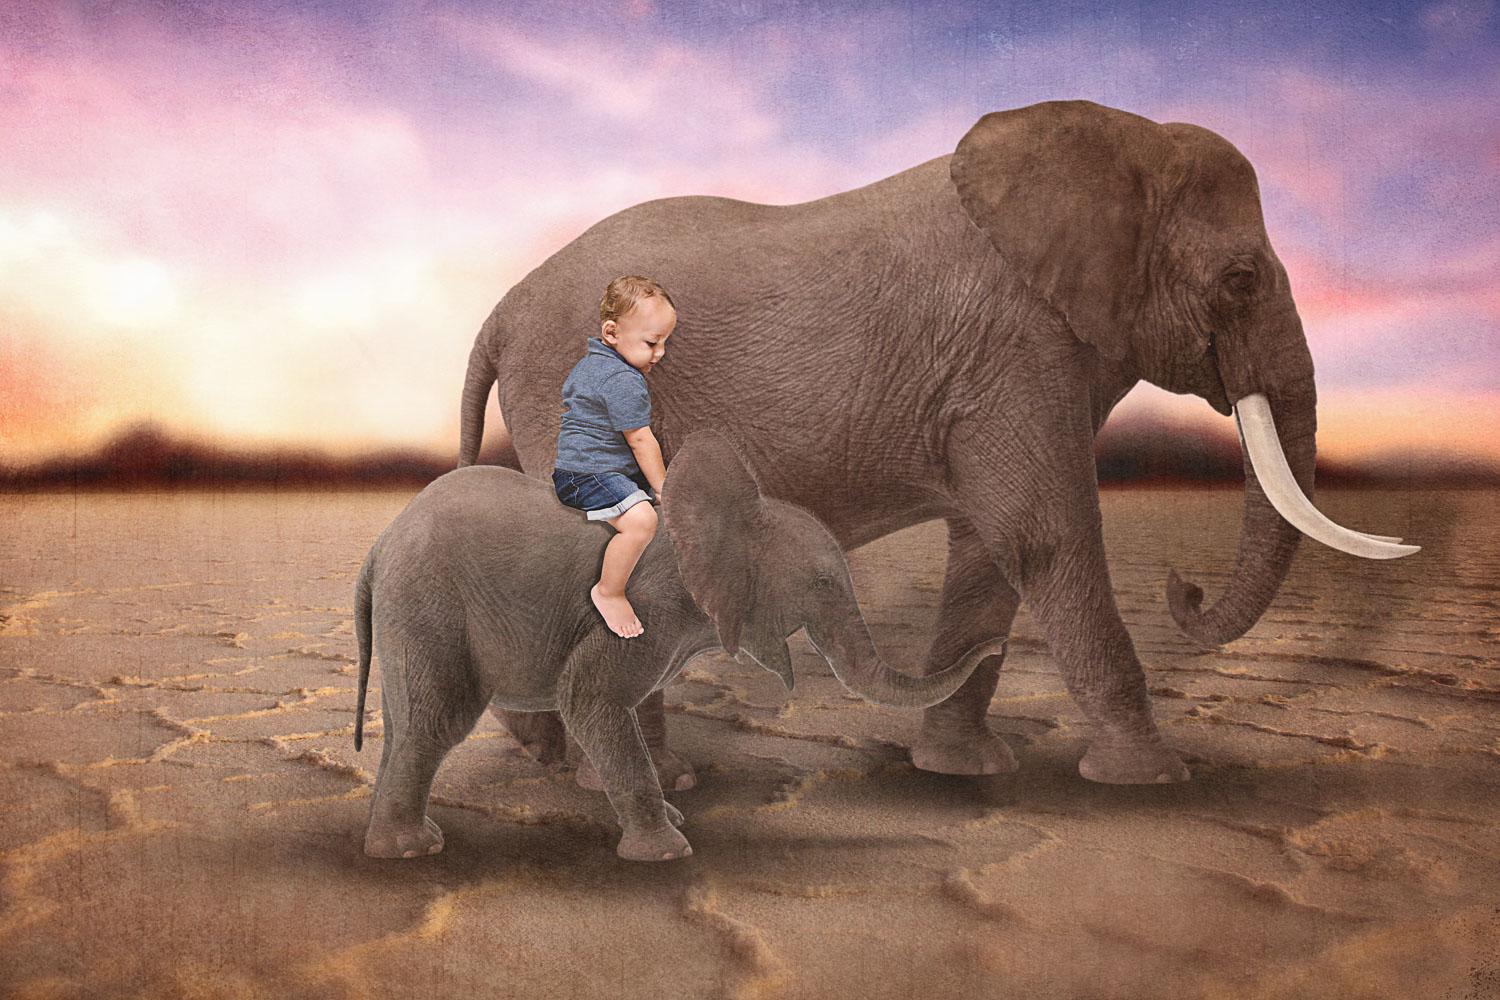 Little boy riding baby elephant next to mama storybook composite